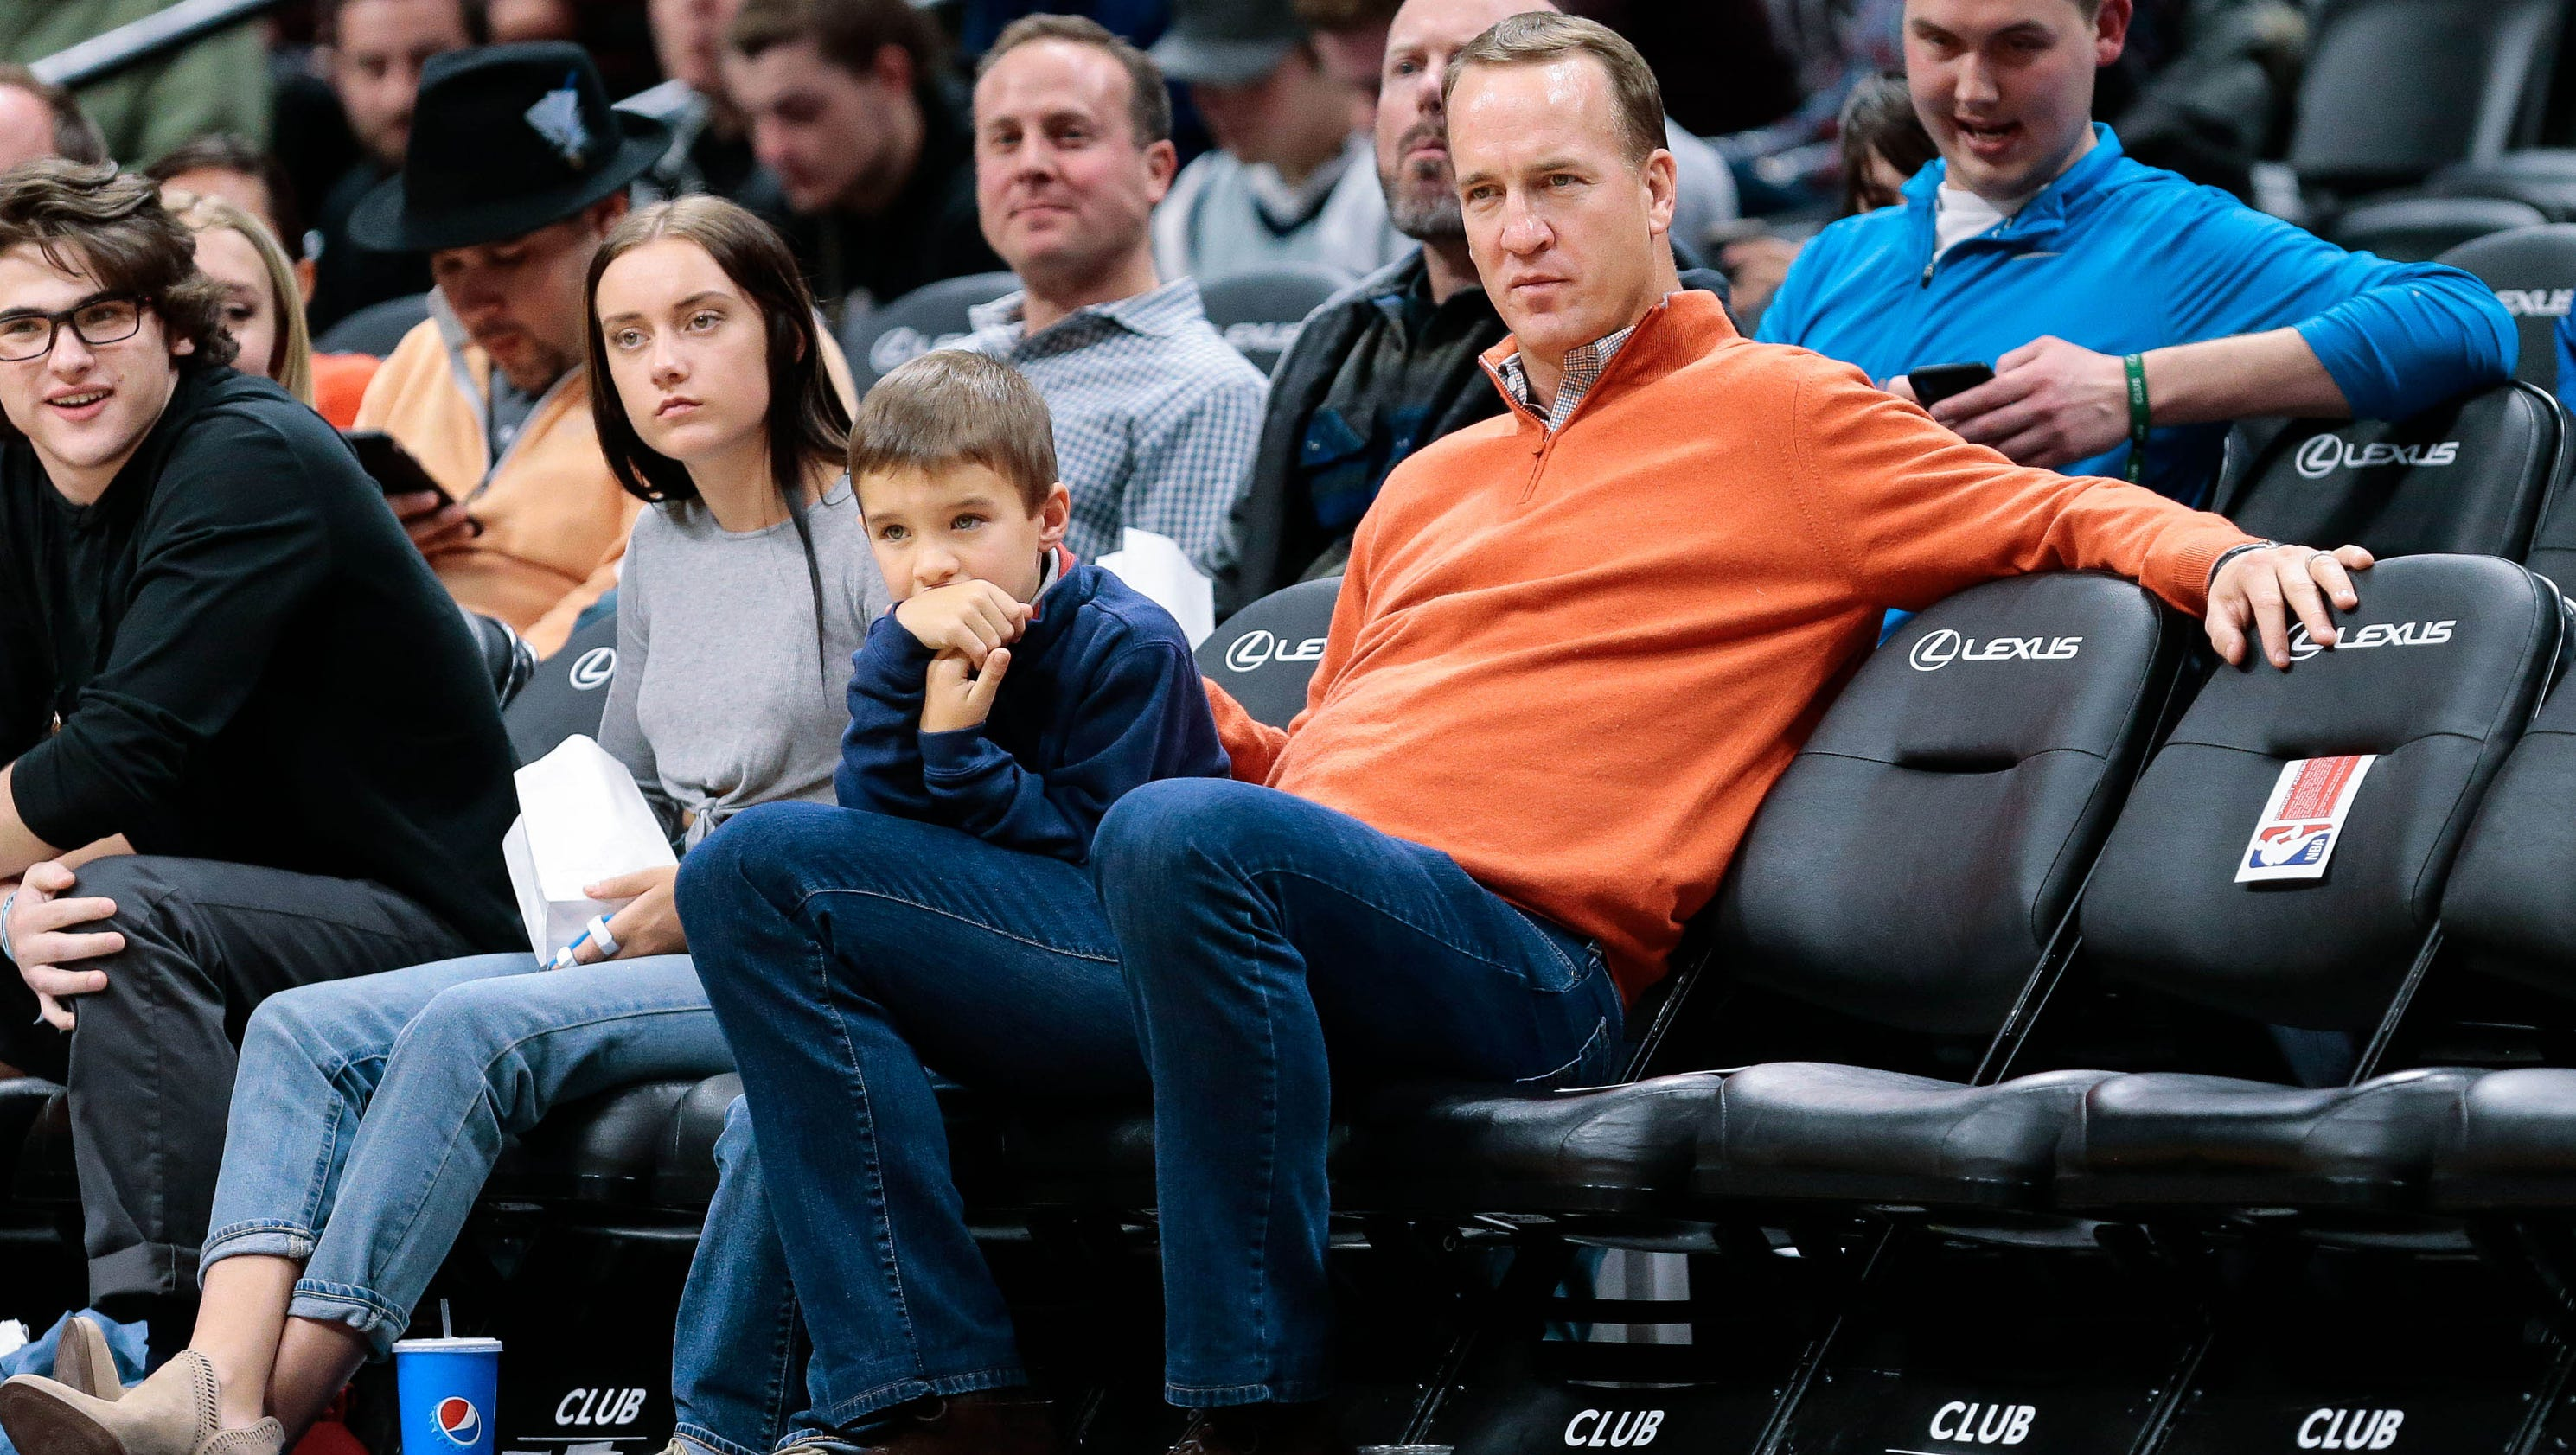 Marshall Mobile Homes >> Peyton Manning's son steals dad's spotlight at NBA game